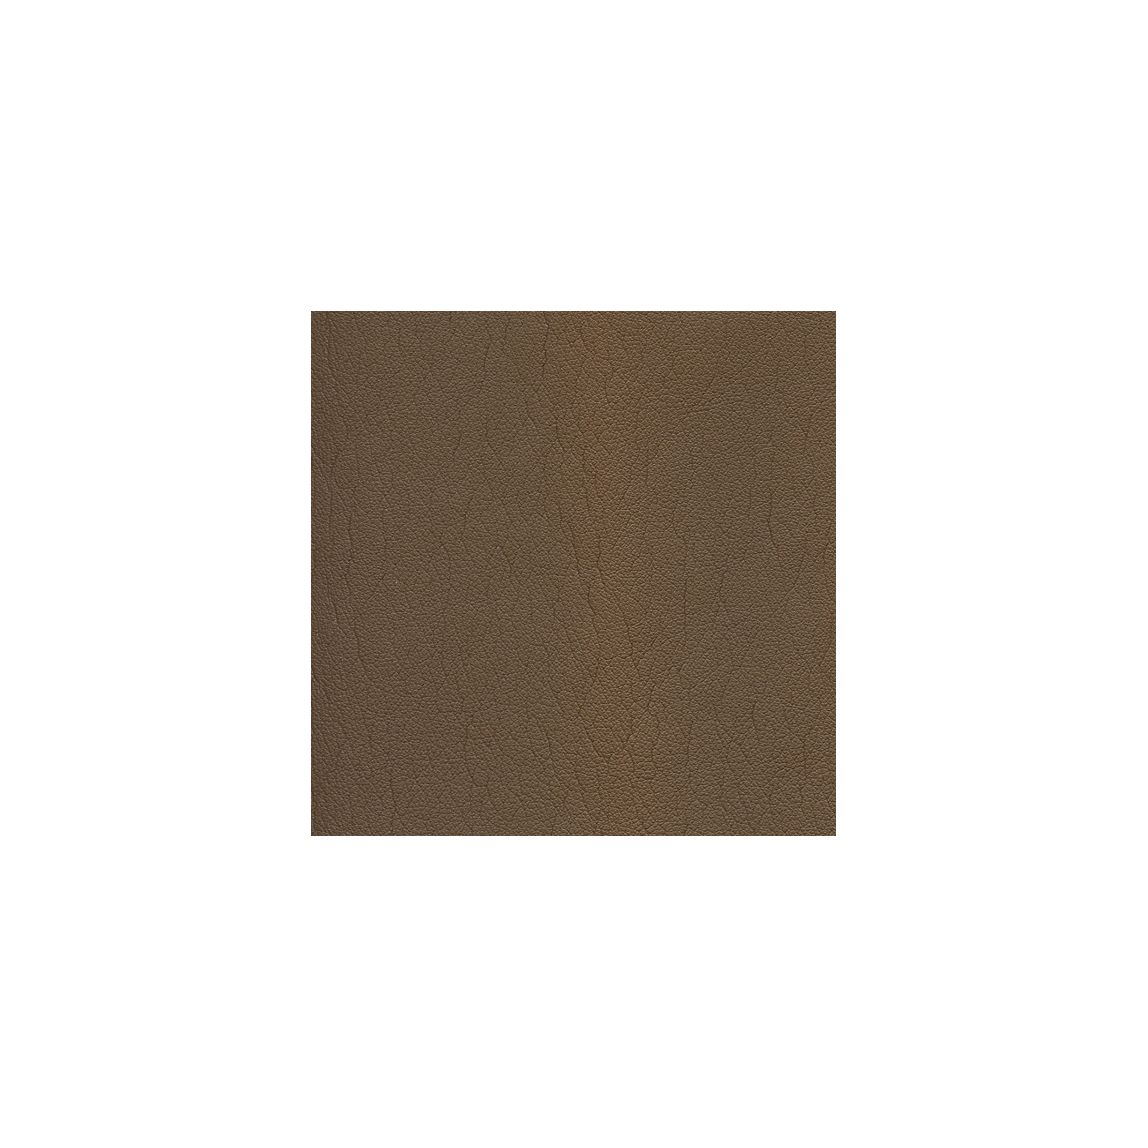 Ultraleather Pro Cougar Swatch